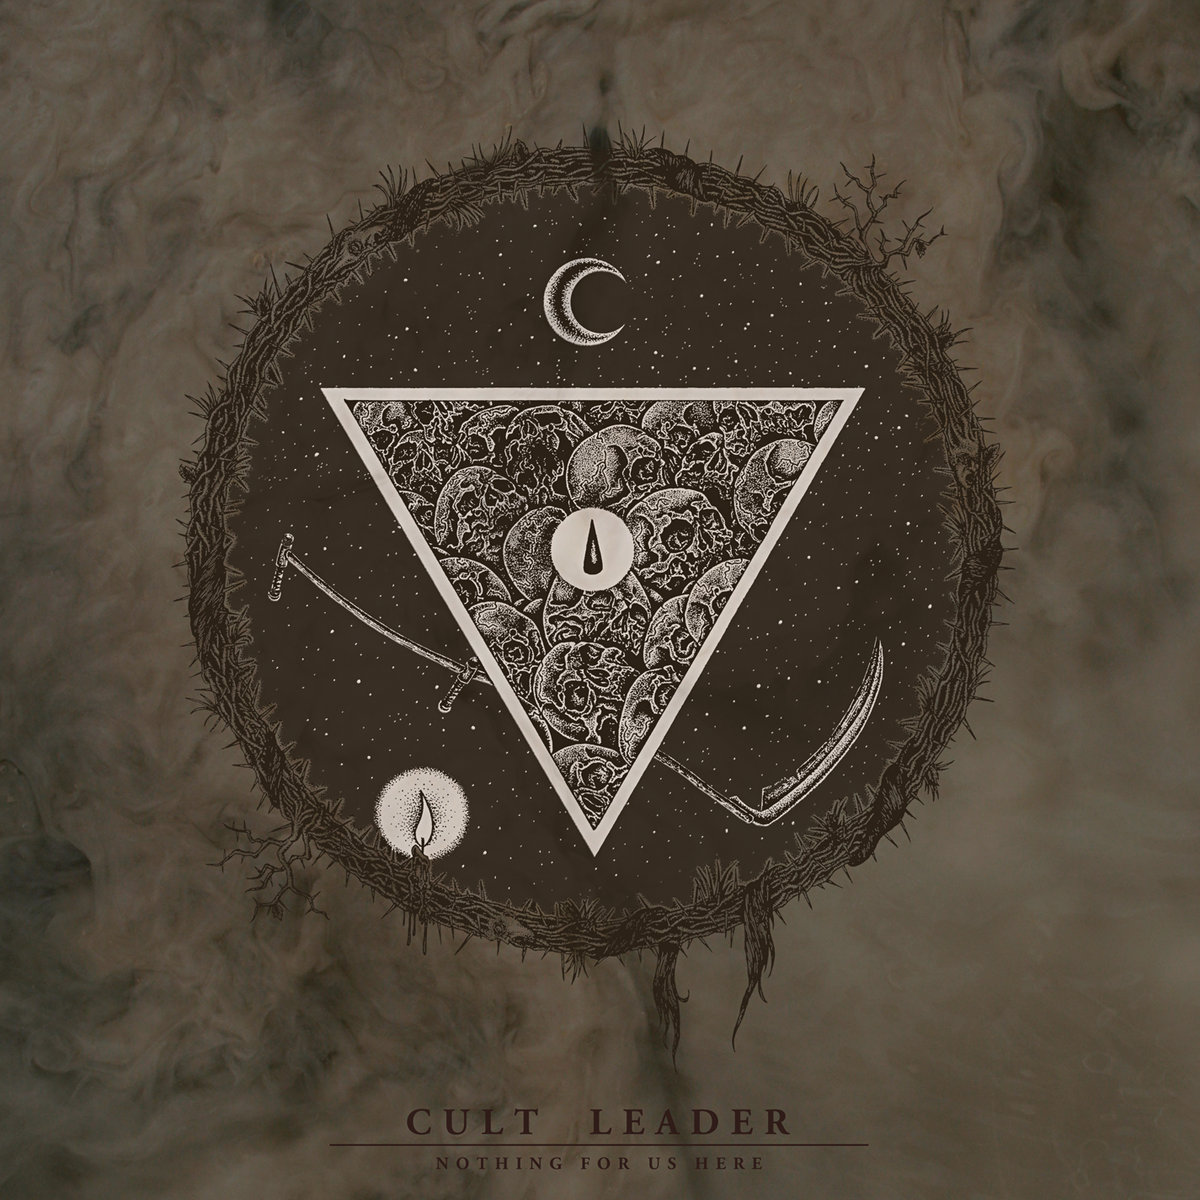 Cult Leader - Nothing For Us Here artwork